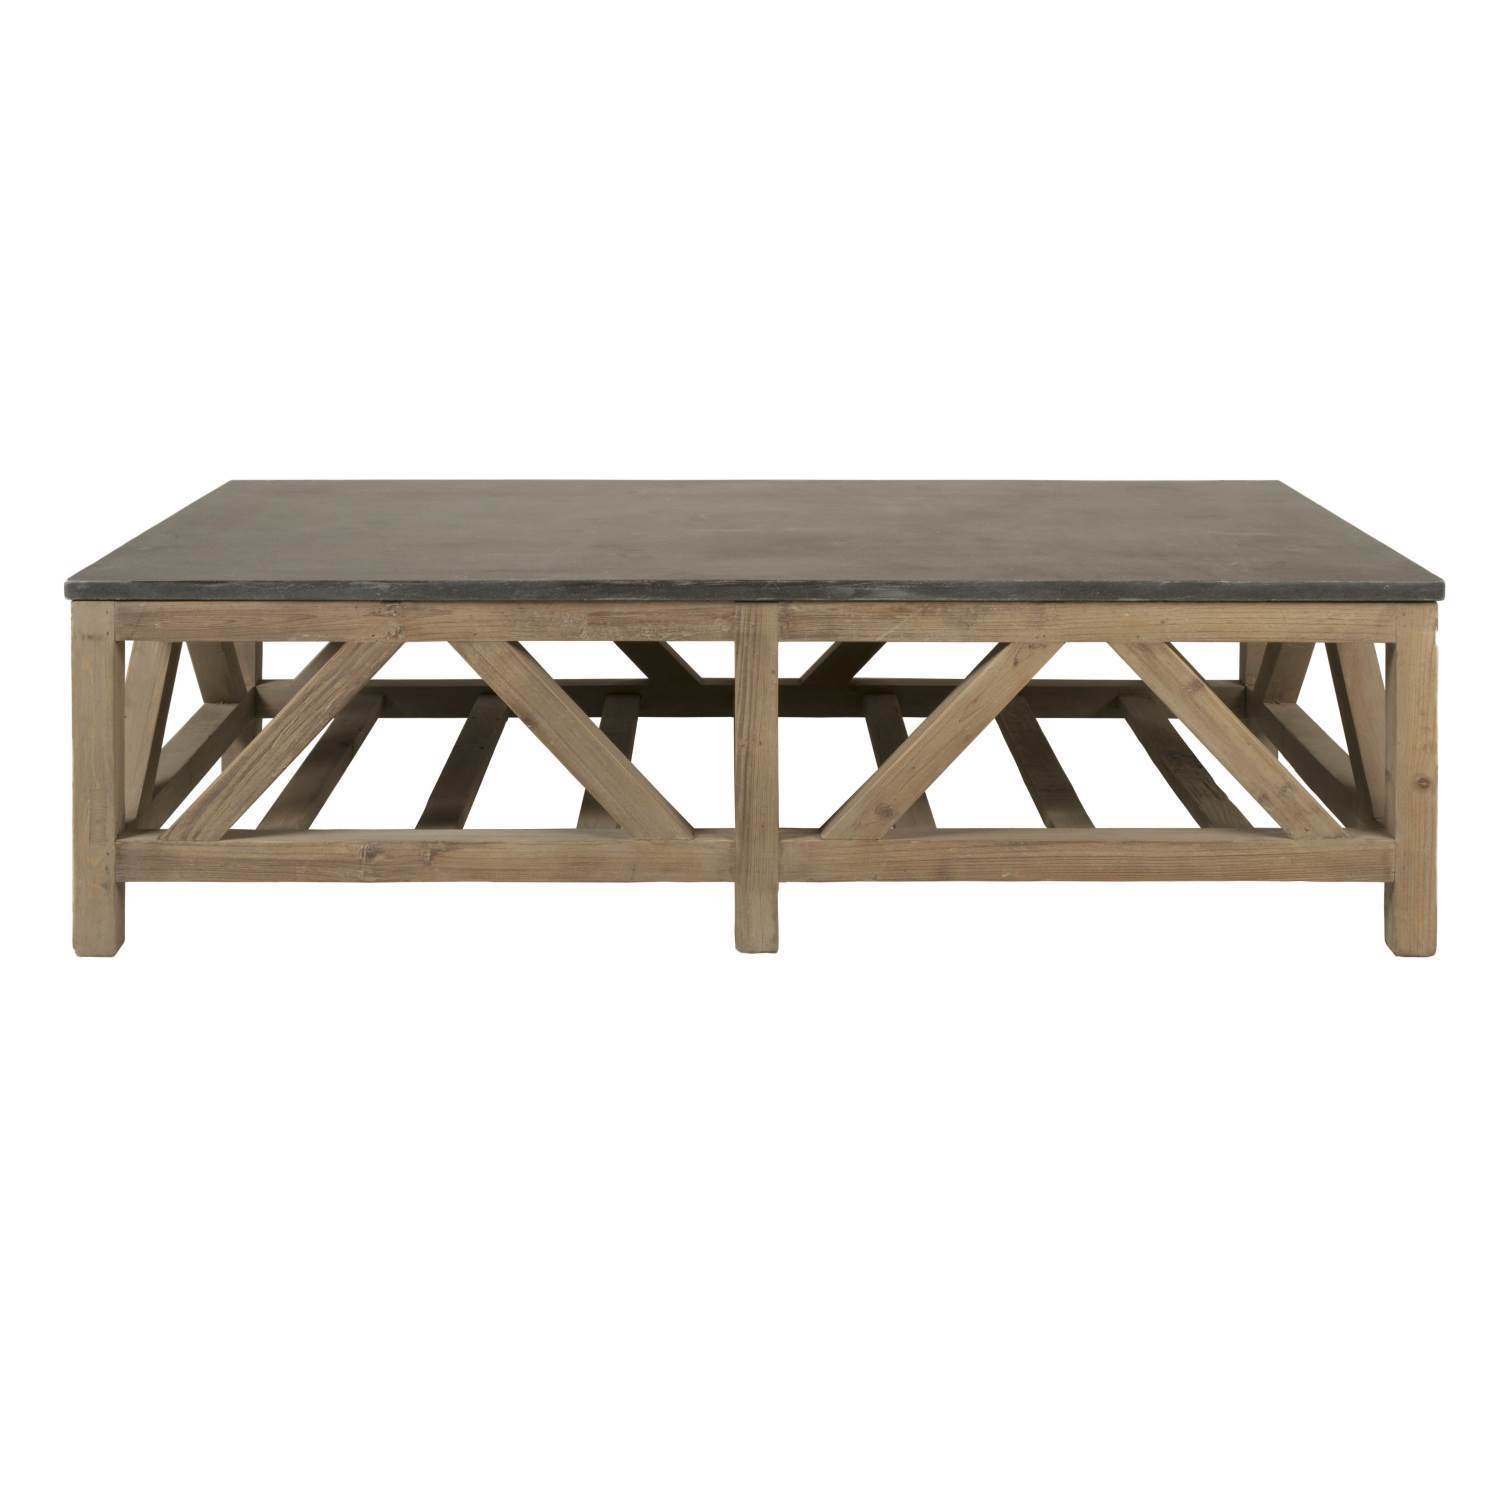 Shop gray manor albert stone coffee table free shipping today overstock com 12004481